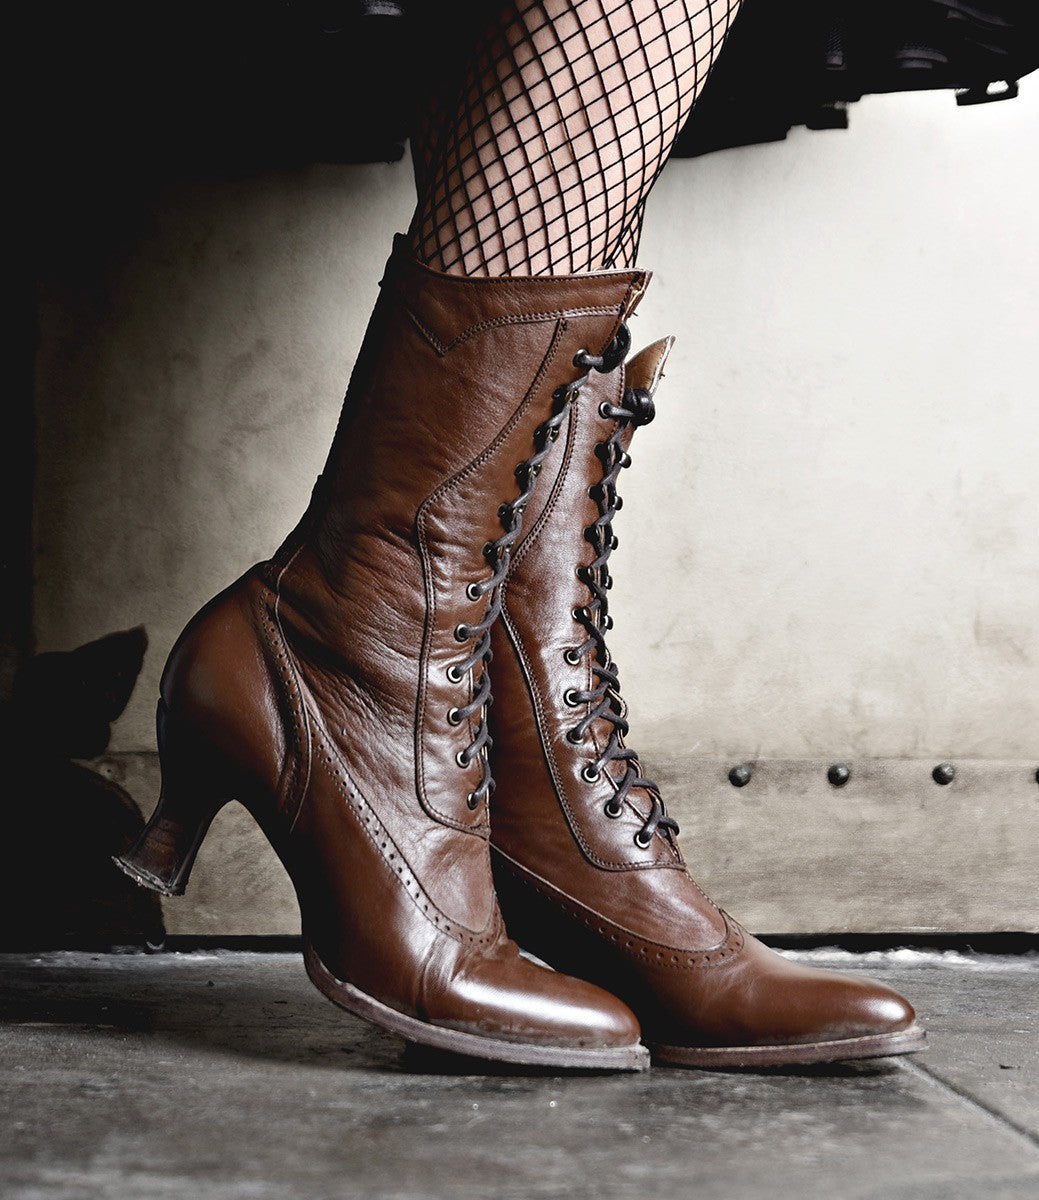 Steampunk Boots & Shoes, Heels & Flats Modern Victorian Lace Up Leather Boots in Cognac $285.00 AT vintagedancer.com